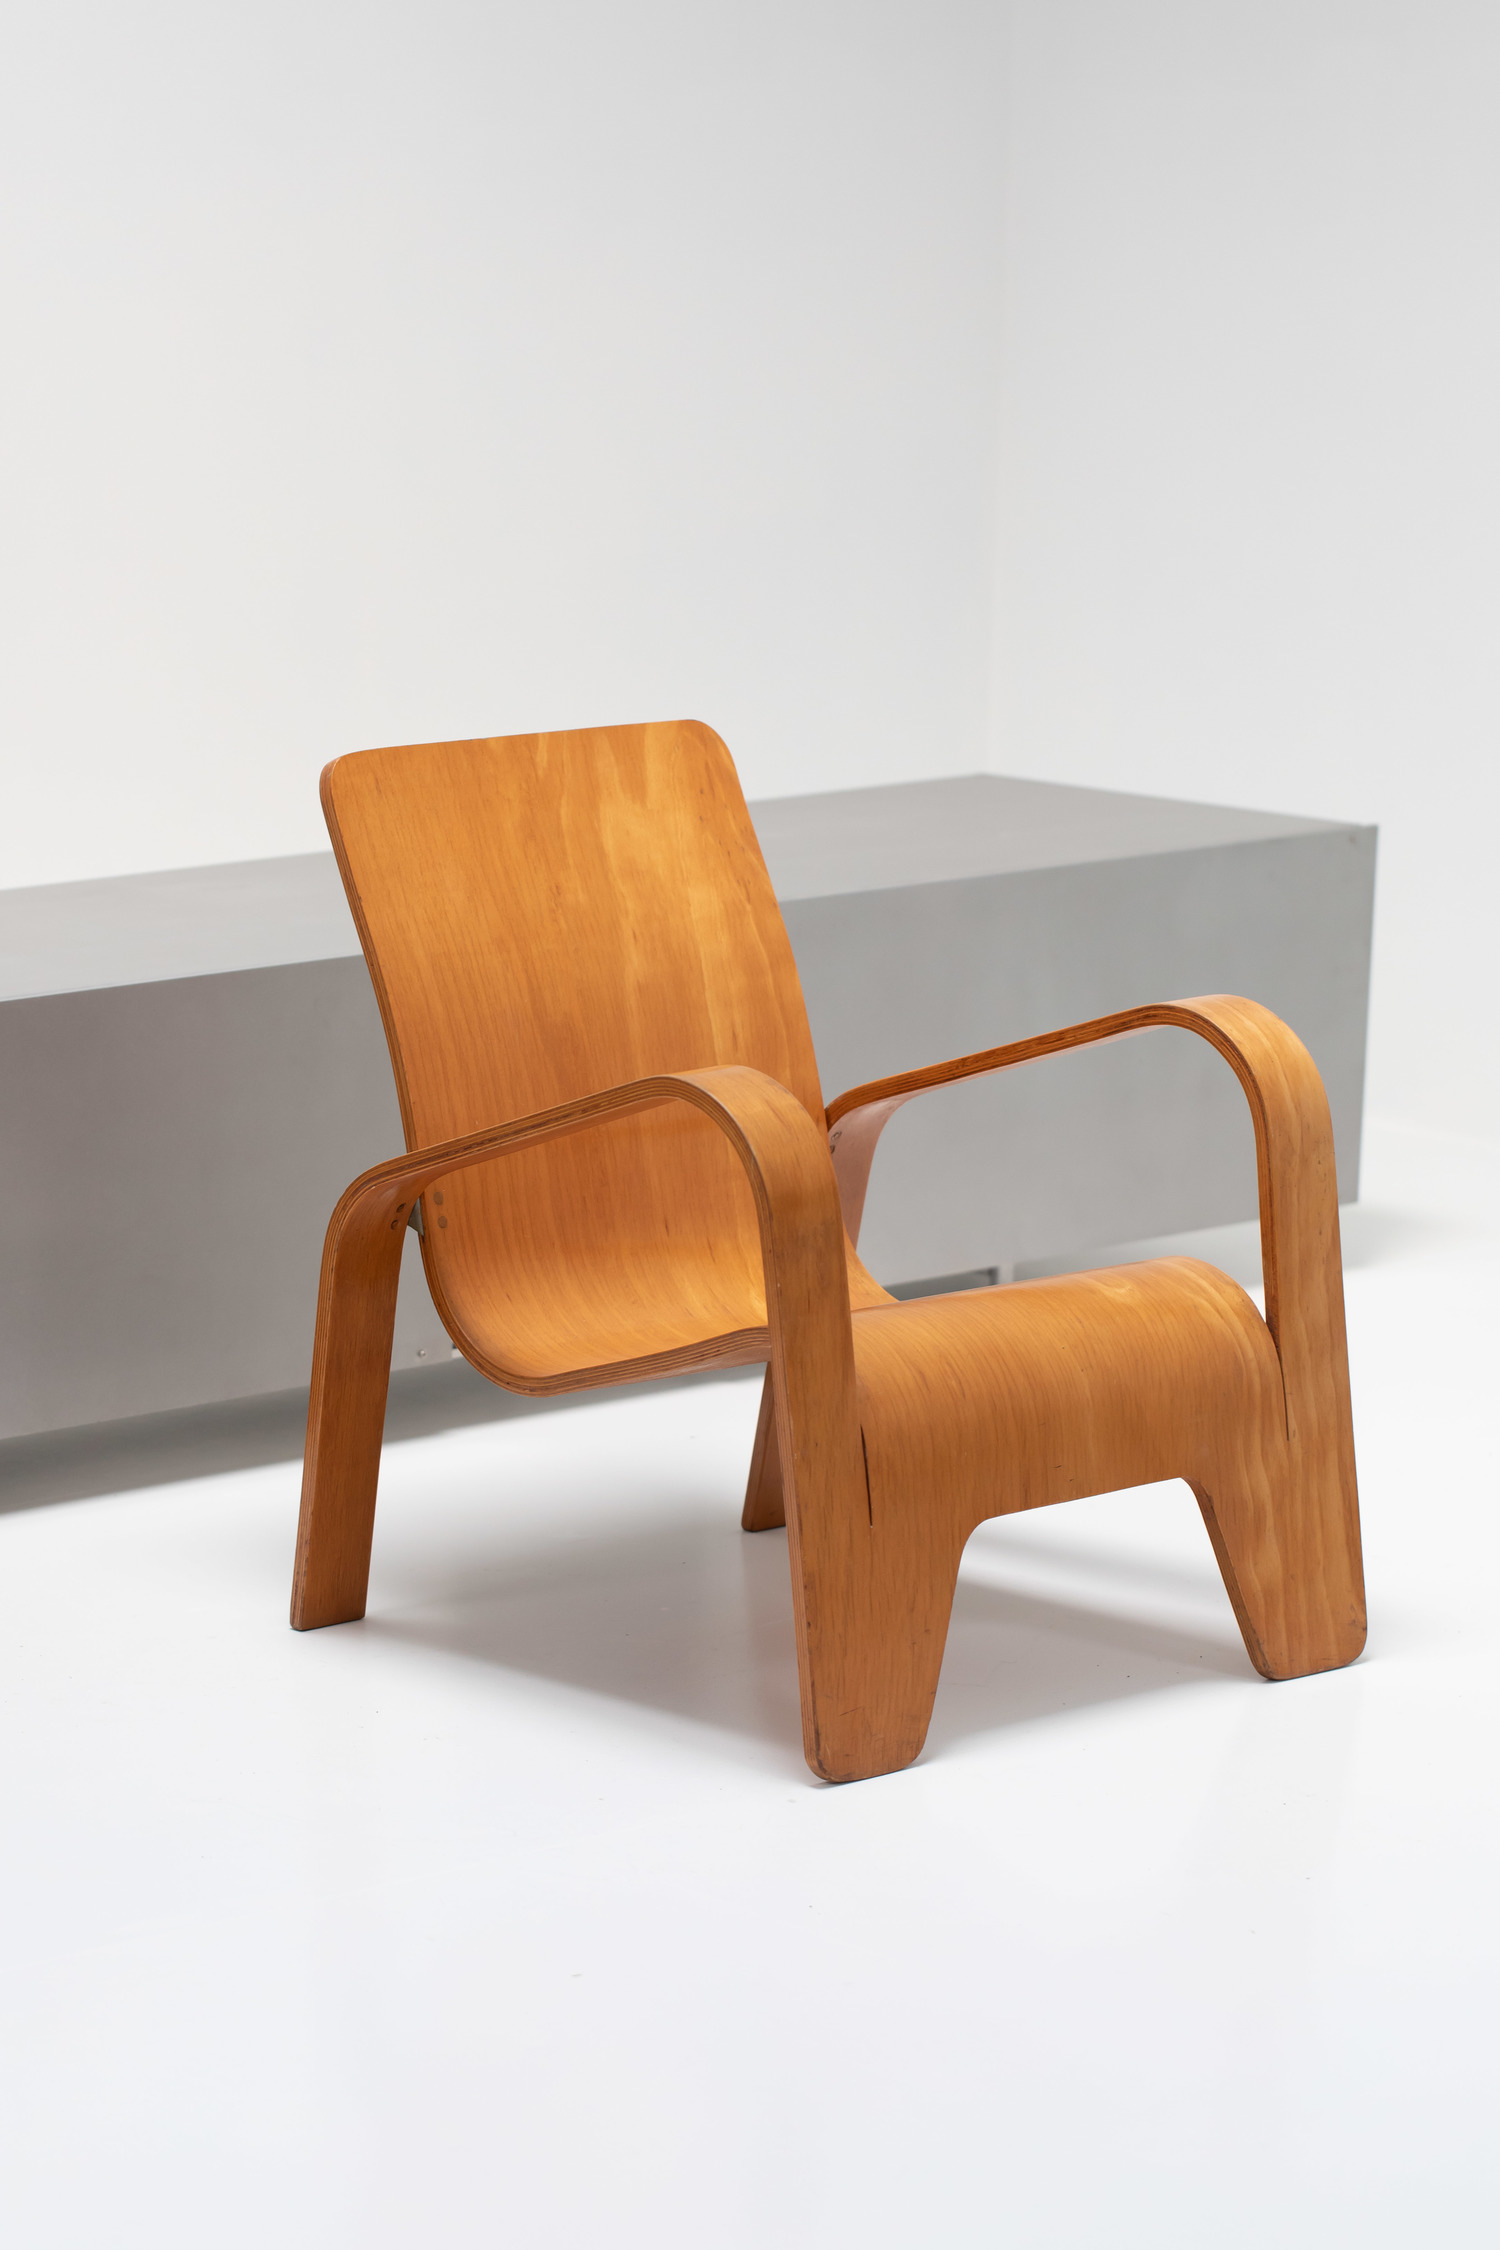 LAWO chair by Han Pieck 1946